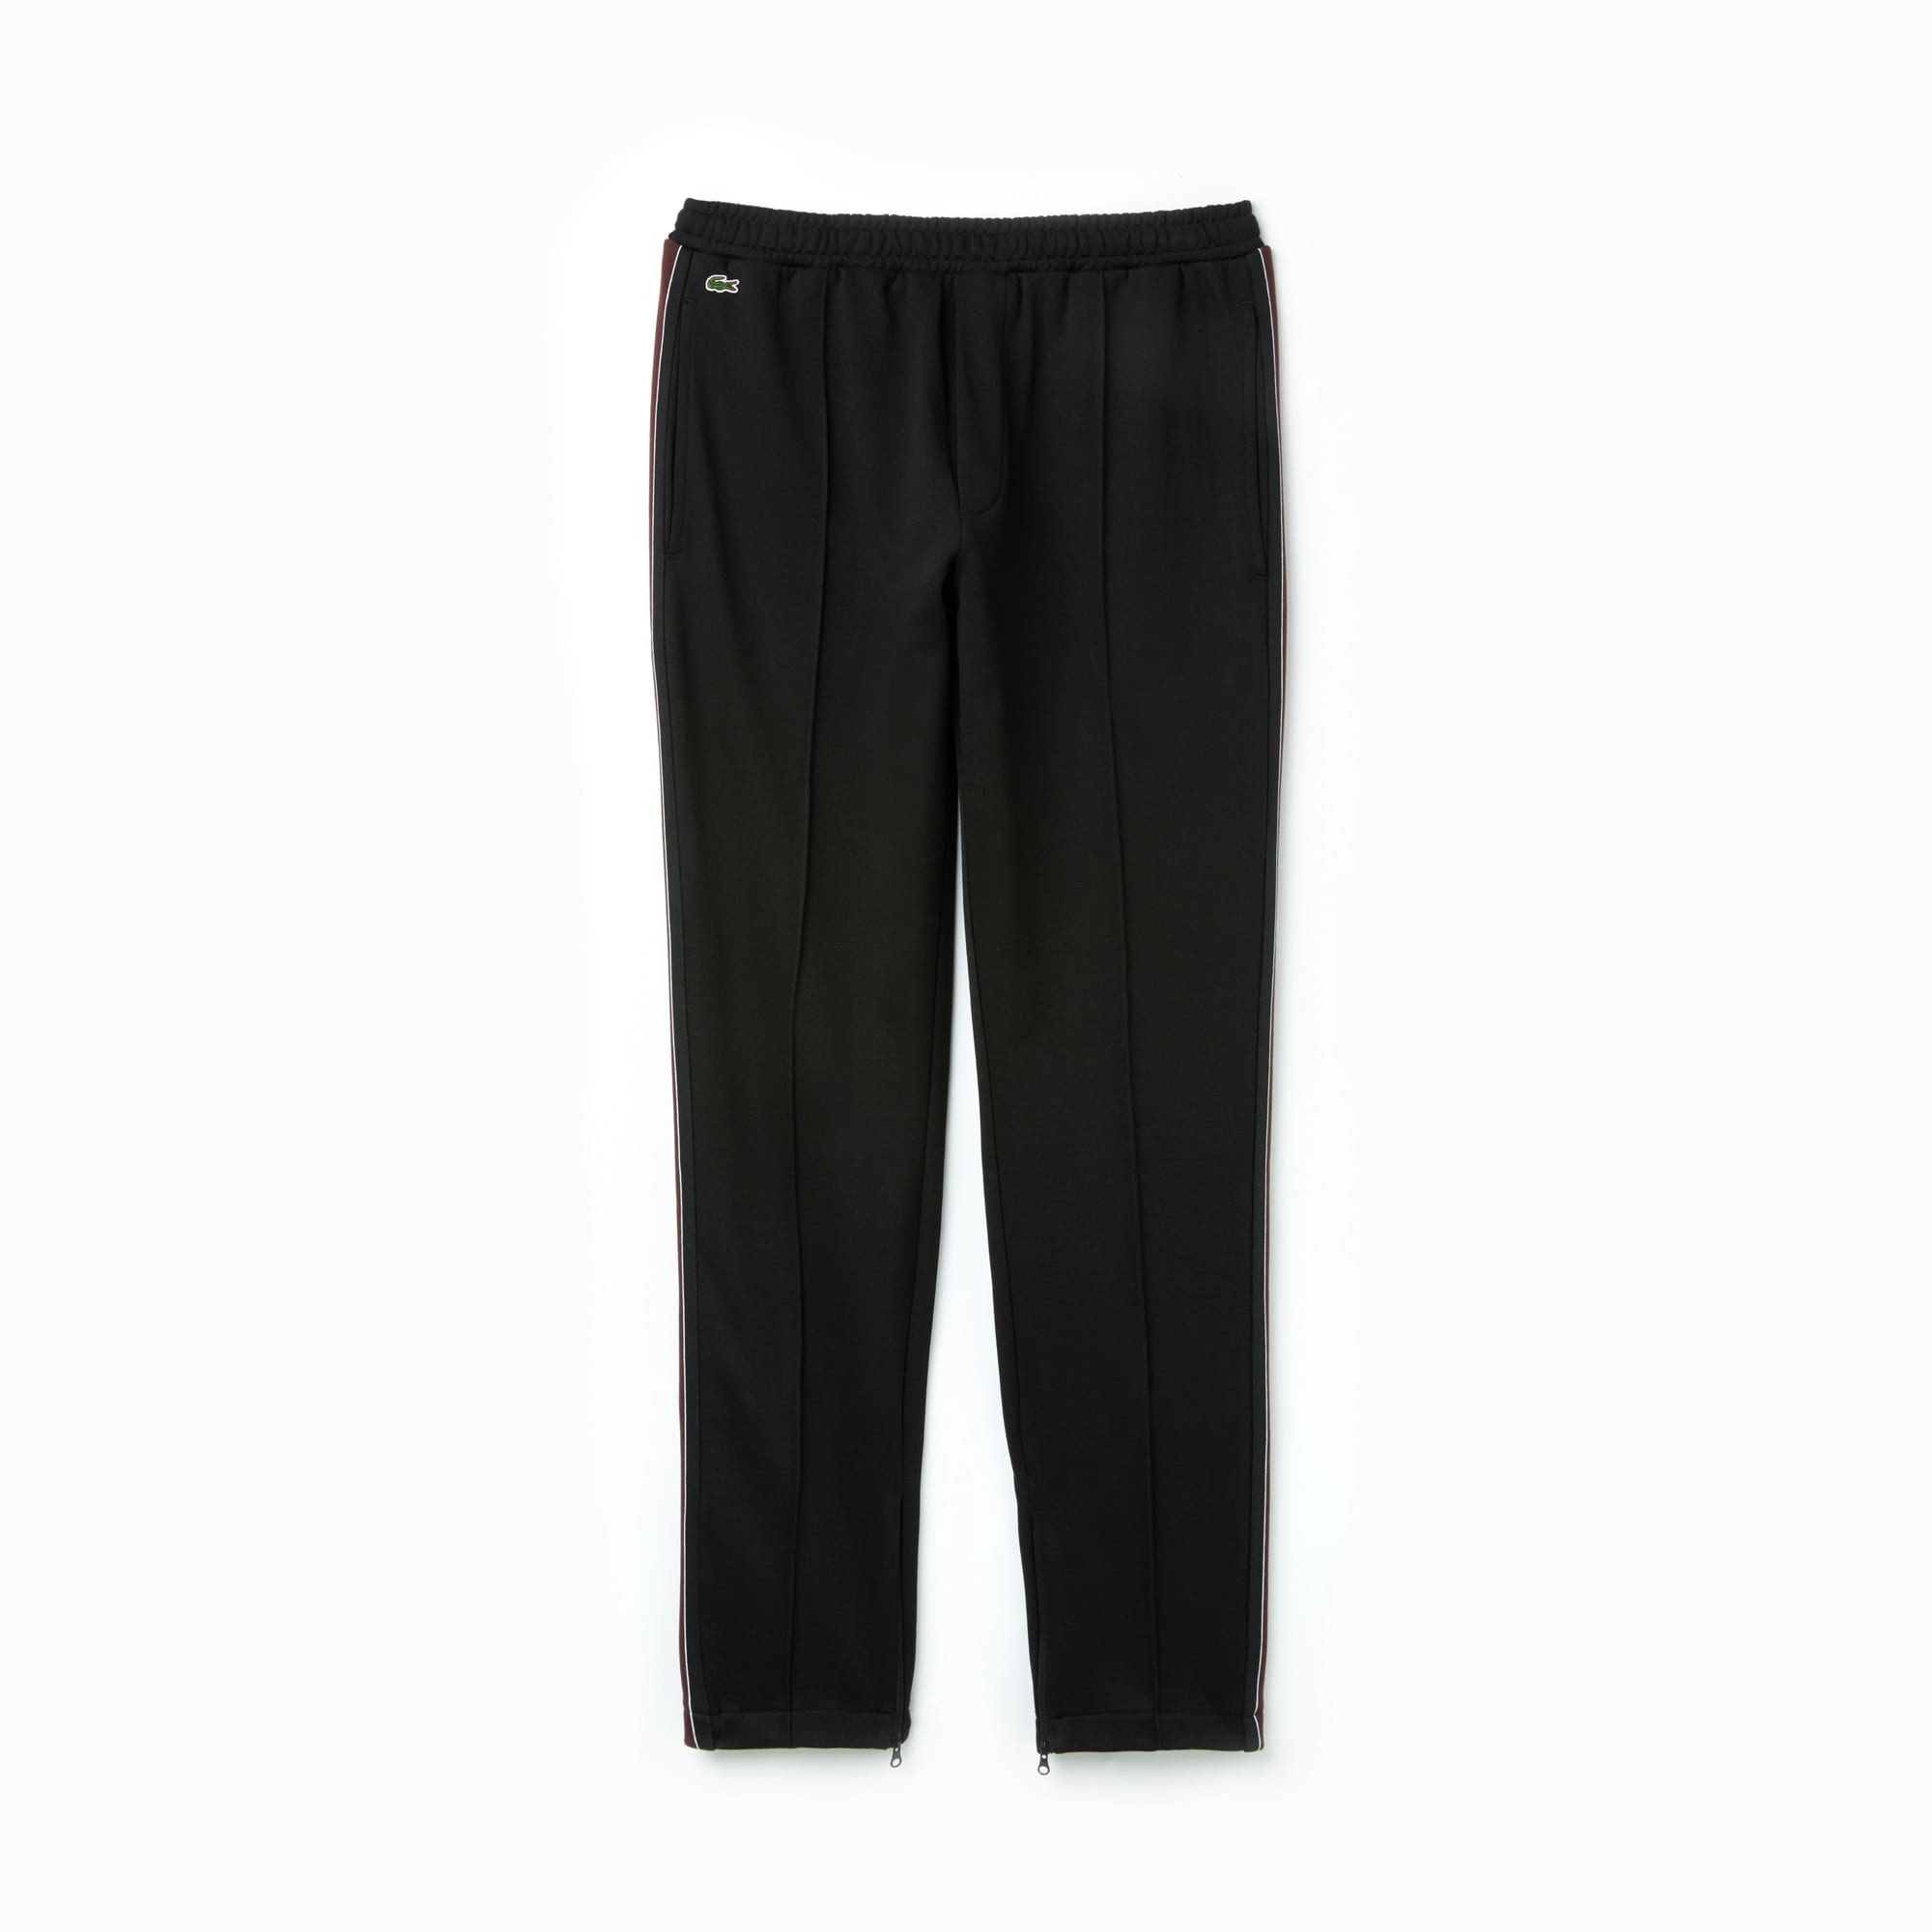 Men's LIVE Contrast Bands Pleated Fleece Jogging Pants